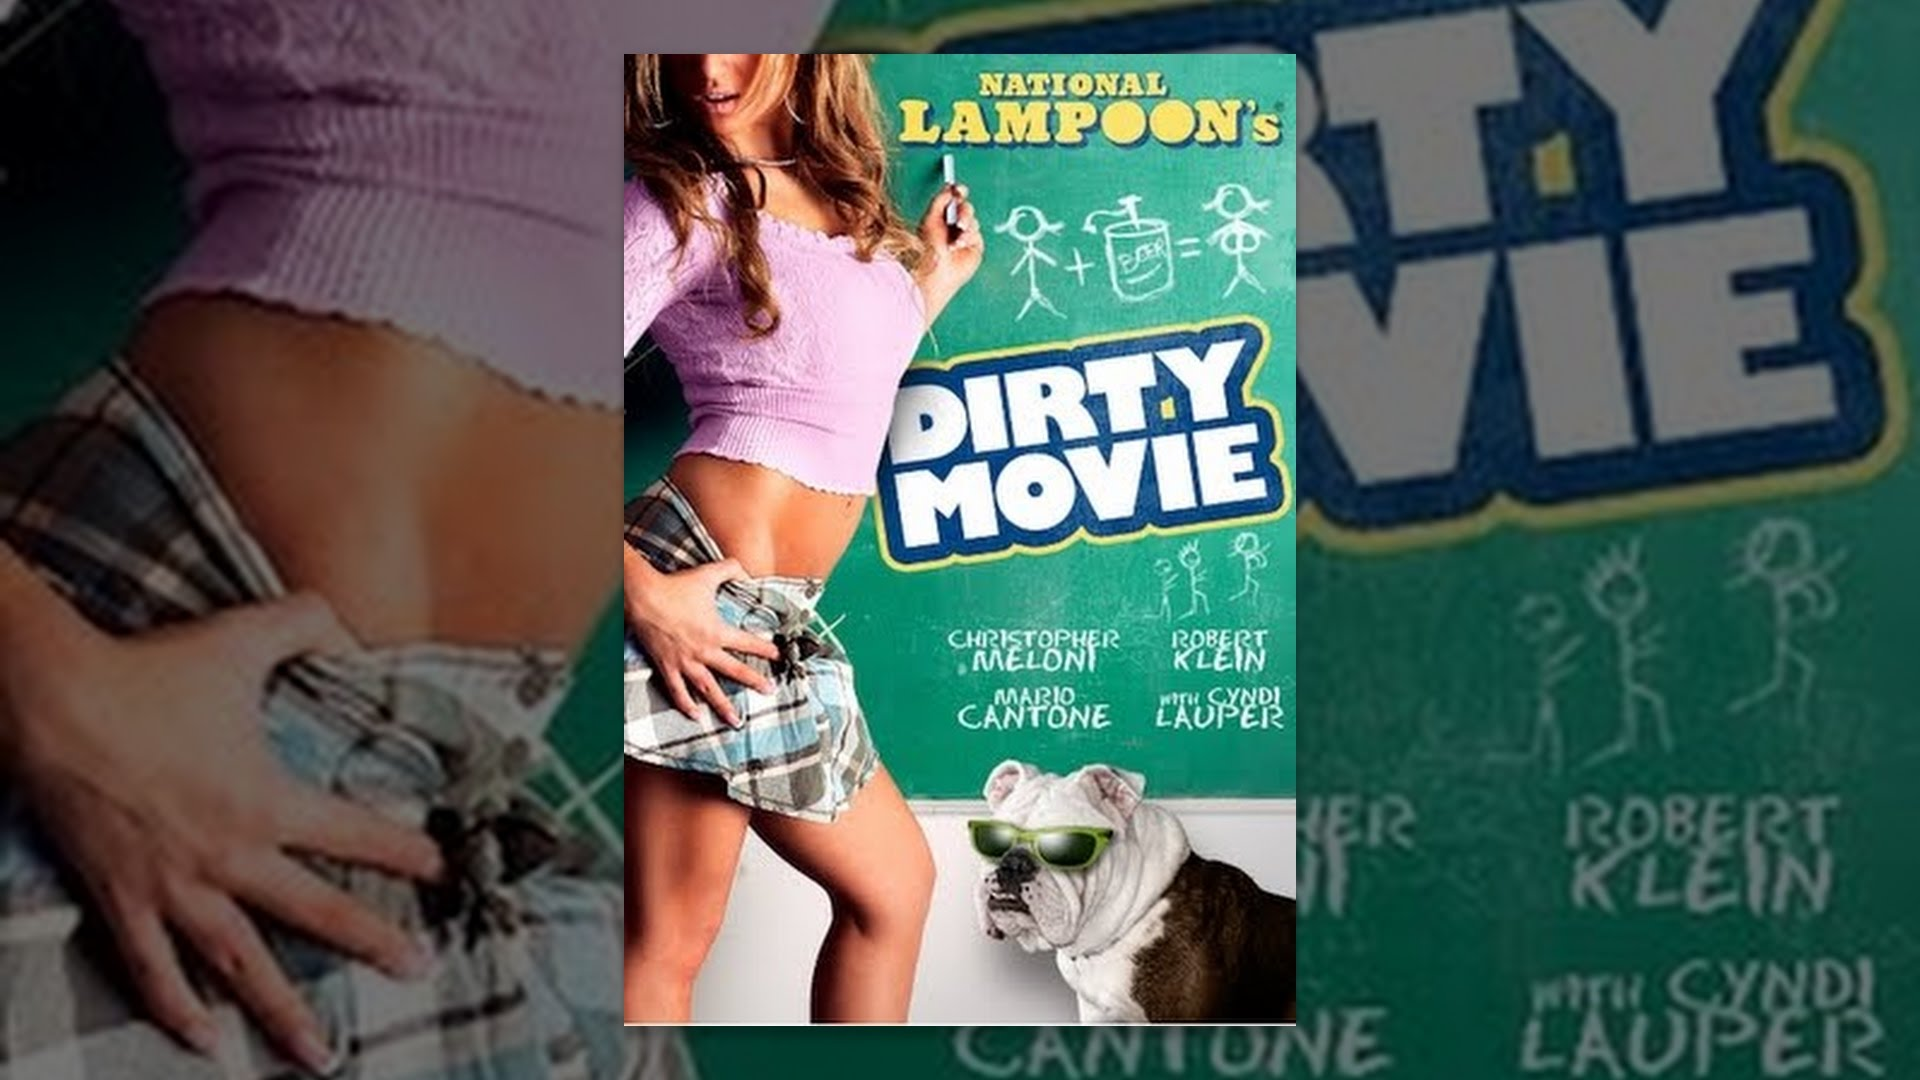 National Lampoon S Dirty Movie Youtube